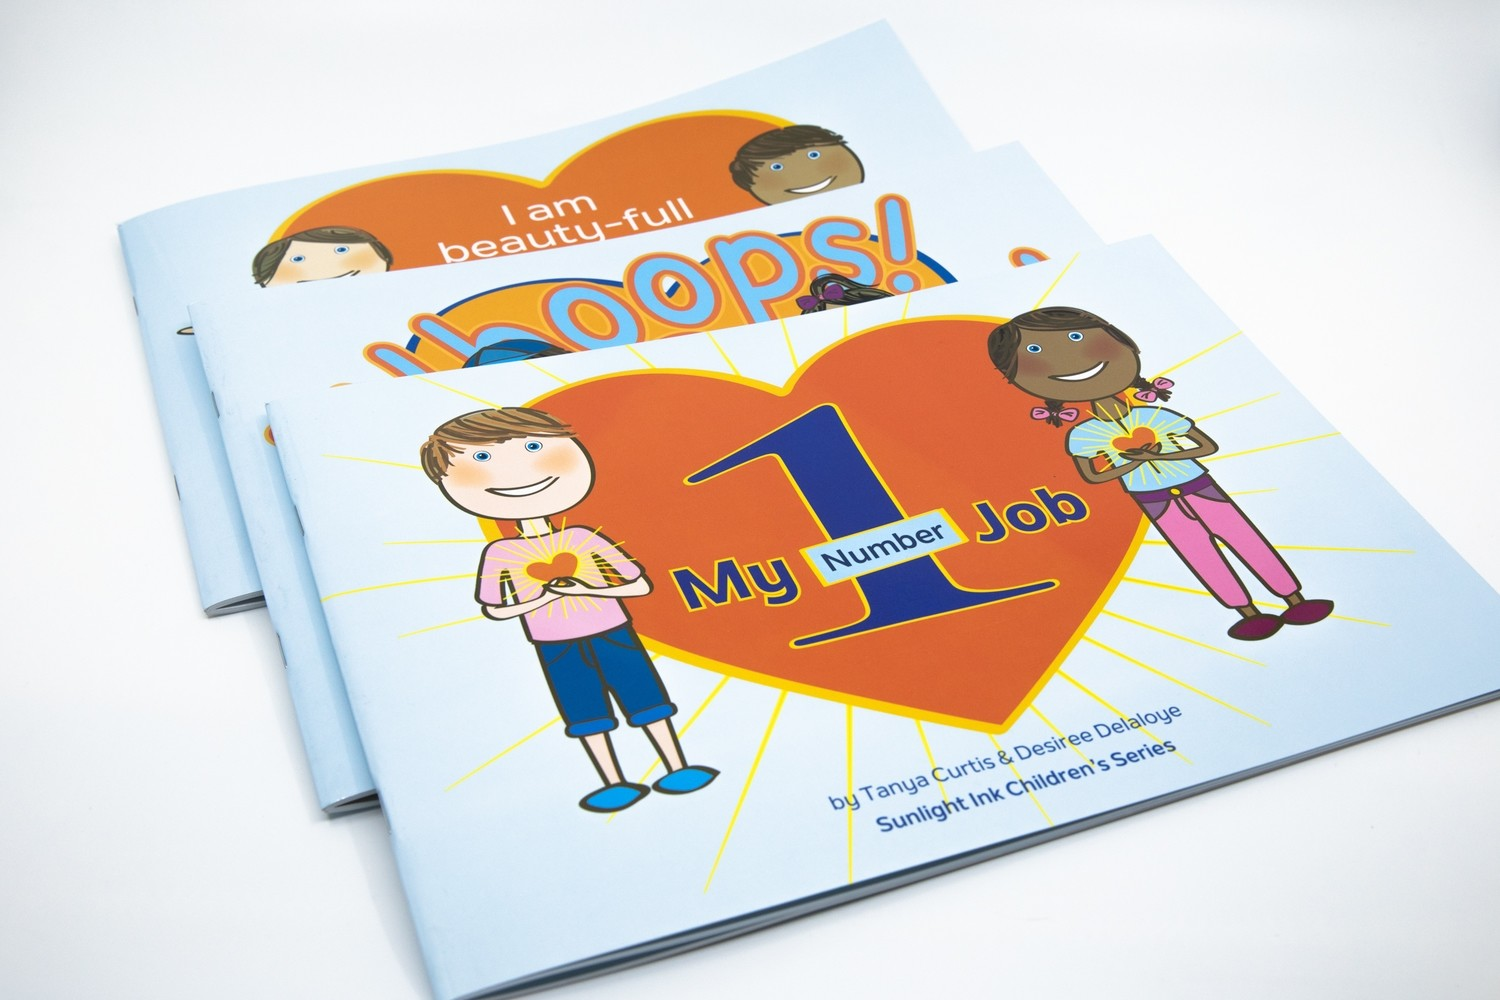 Set of 3 Books - I Am Beauty-Full Just for Being Me + Whoops! ... Is One of My Favourite Words + My No 1 Job